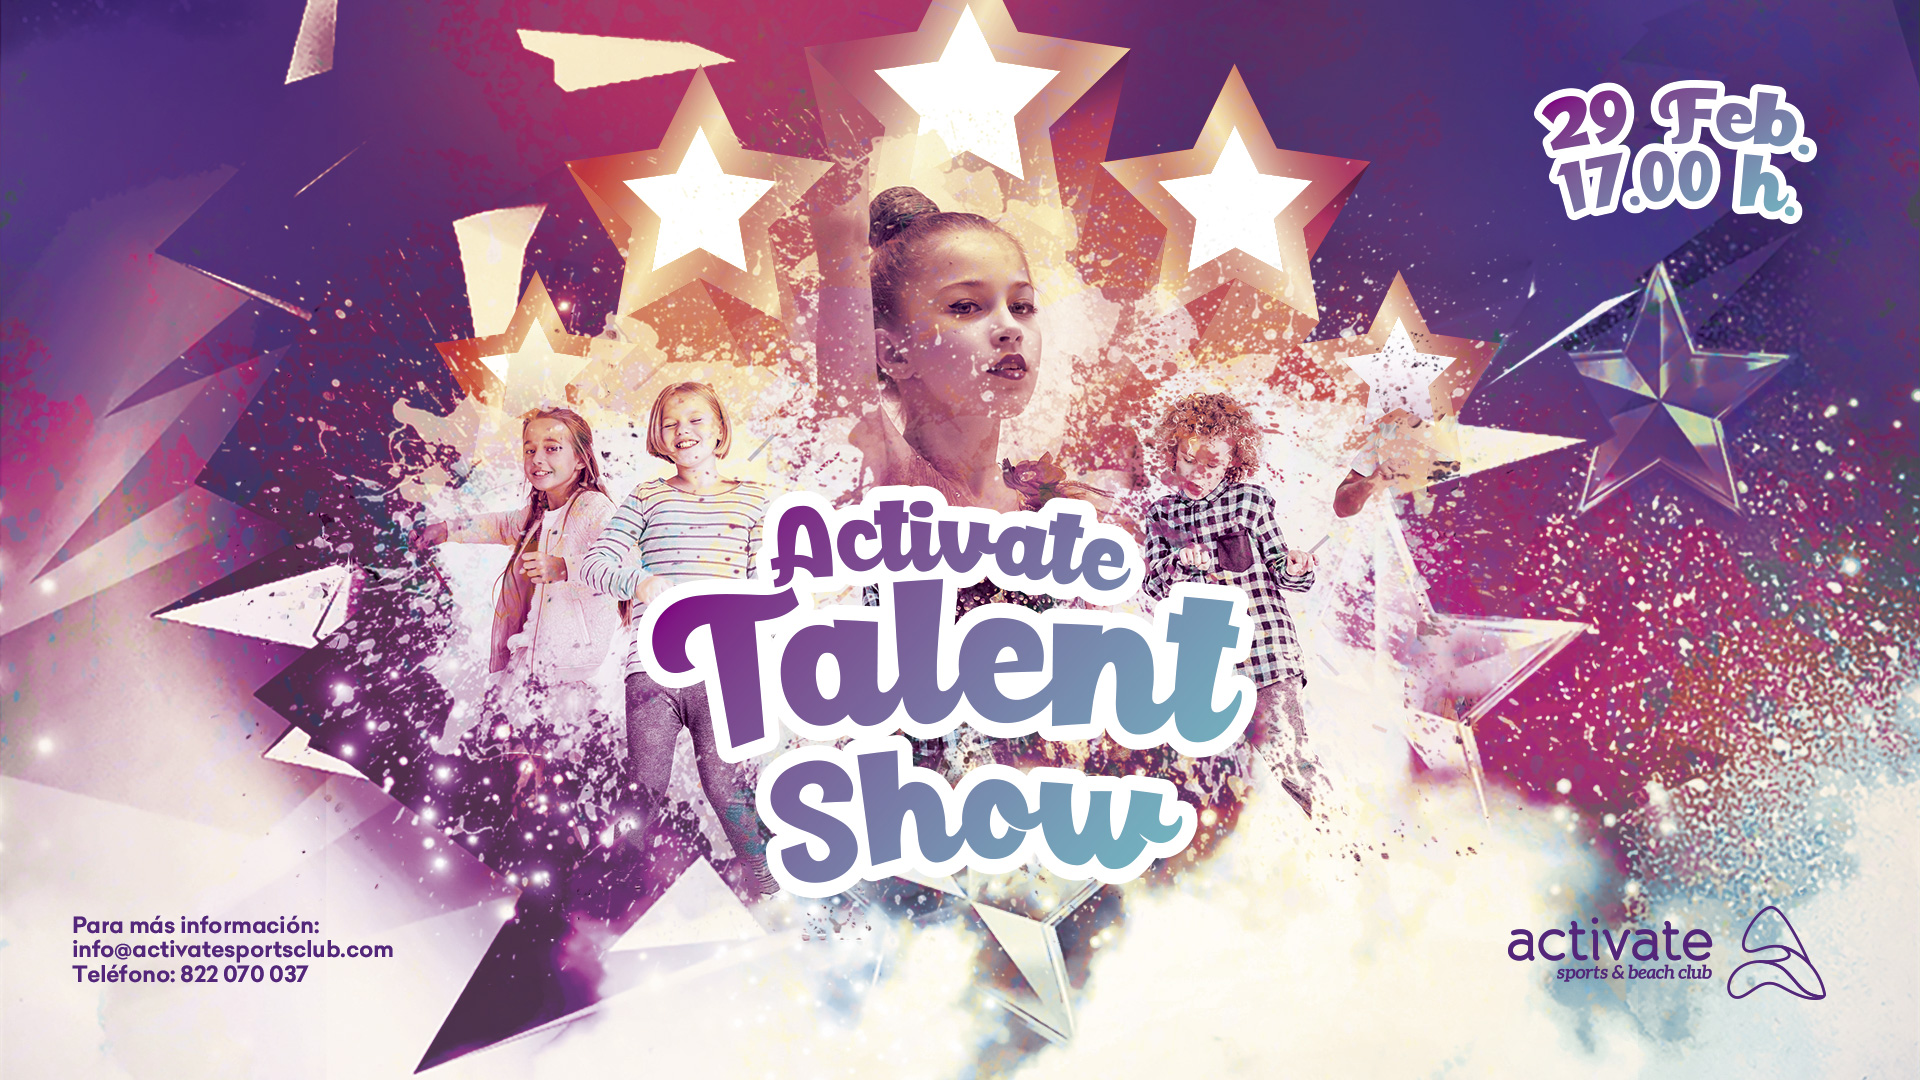 ActivateTalentShow_Kids